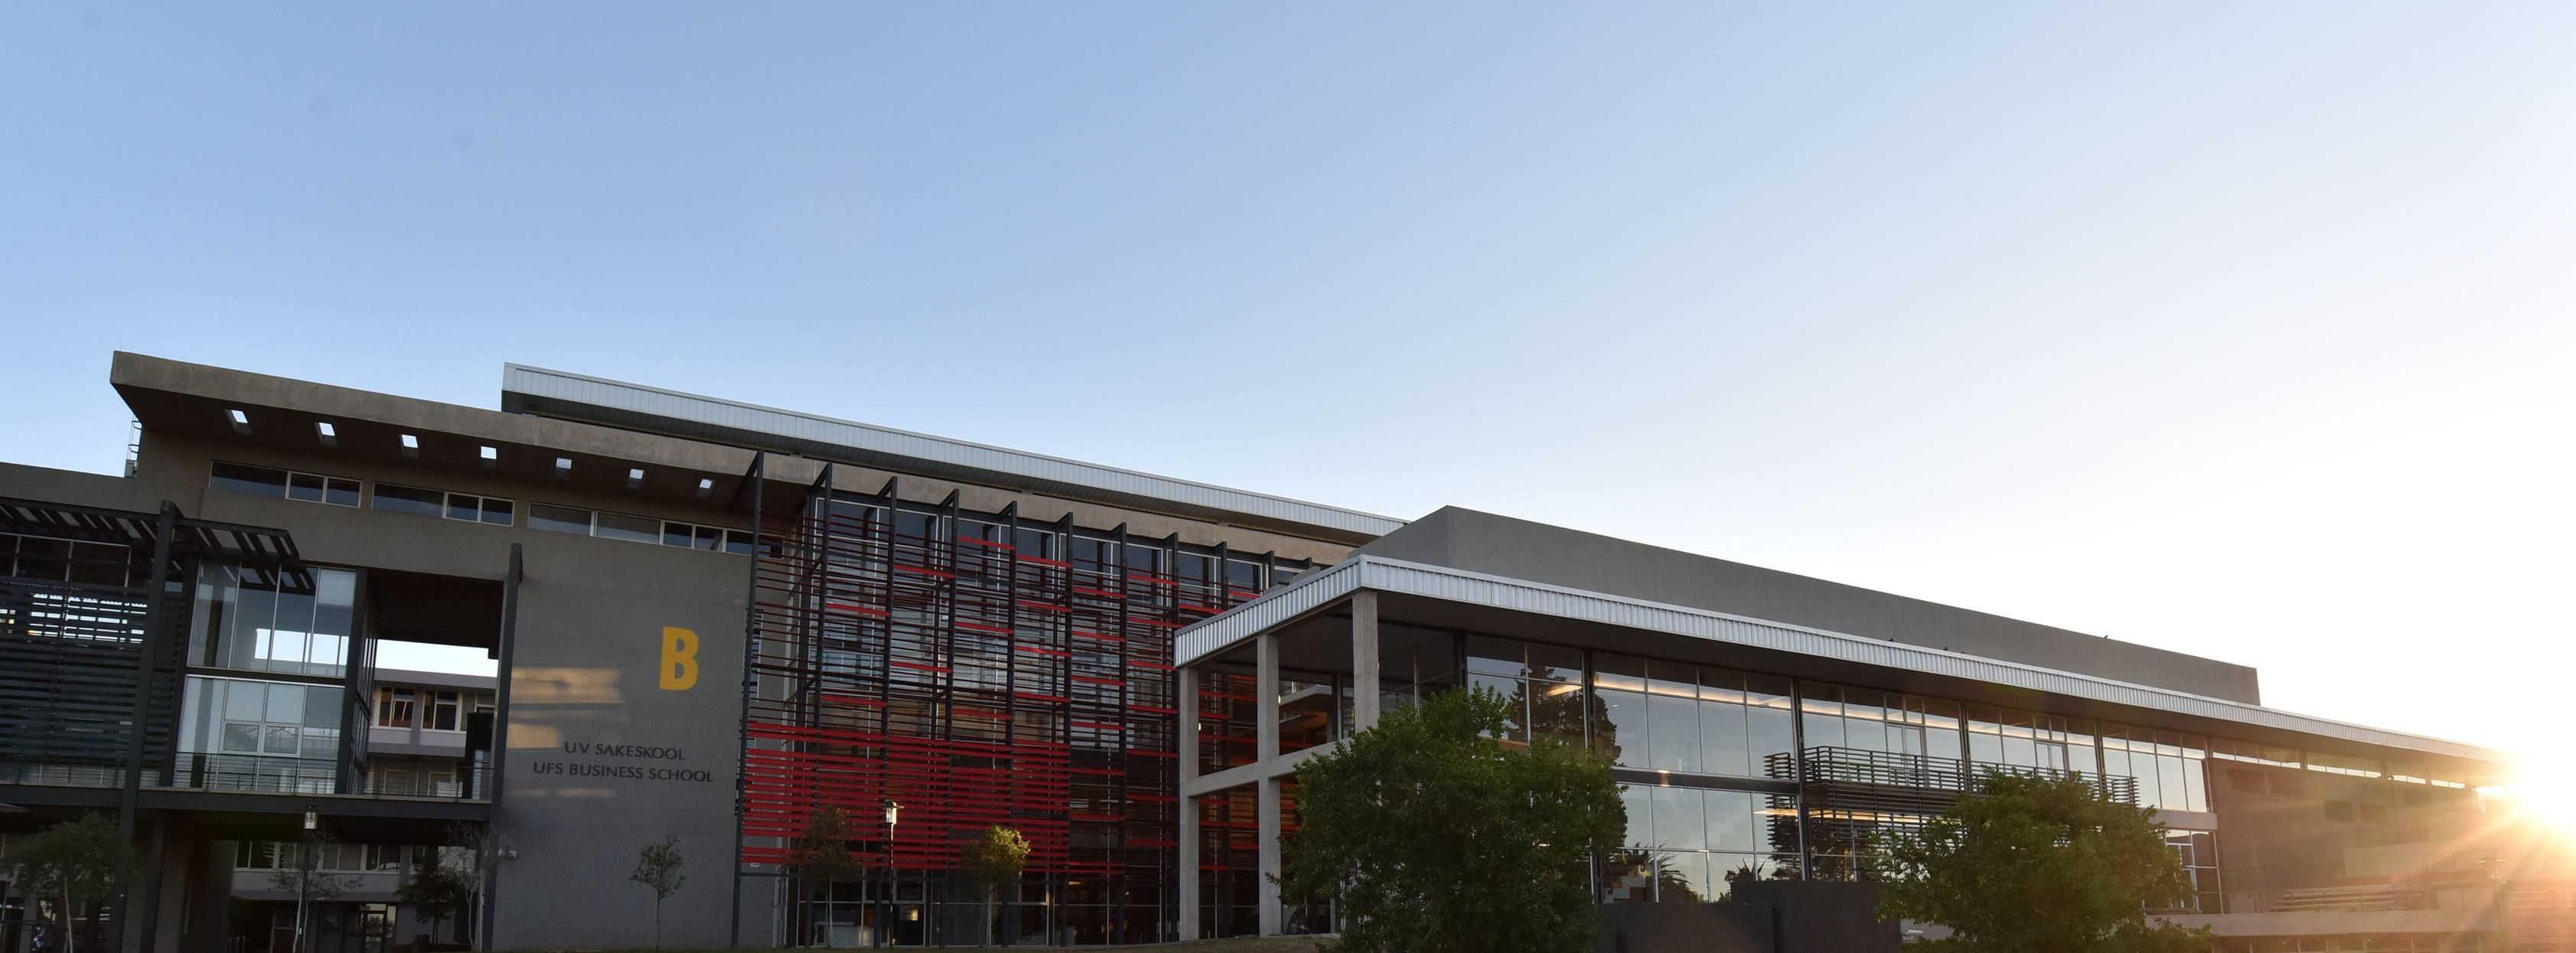 University Of The Free State Ufs Facebook Cover Photo November 2016 Facebook Cover Photos Cover Photos Photo